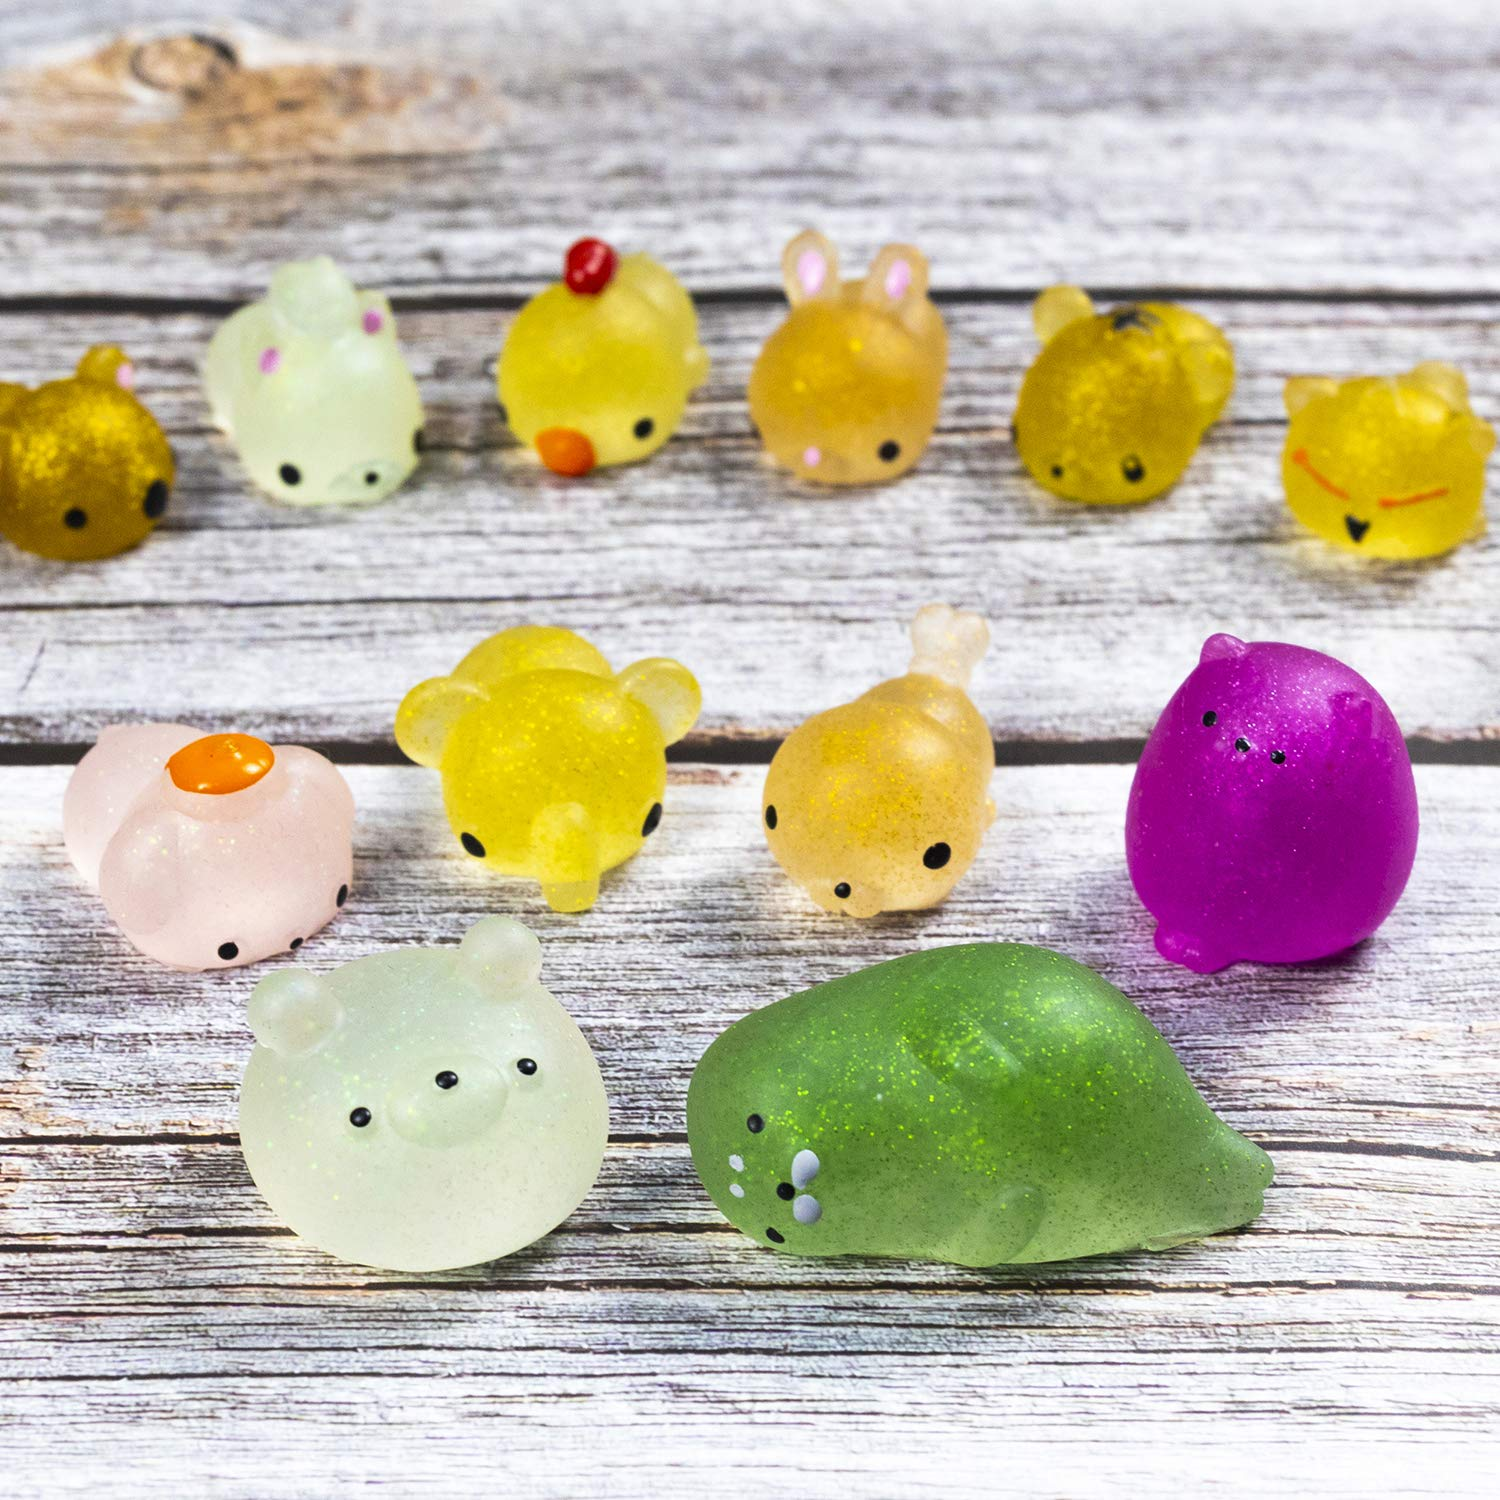 WATINC 50 Pcs 2nd Generation Mochi Squishies Glitter Mini Soft Cute Animal Cat Squeeze Squishies for Kawaii Party Favor Kid Toys Colorful Decoration Simulation and Lovely Stress Relief Hand Toys